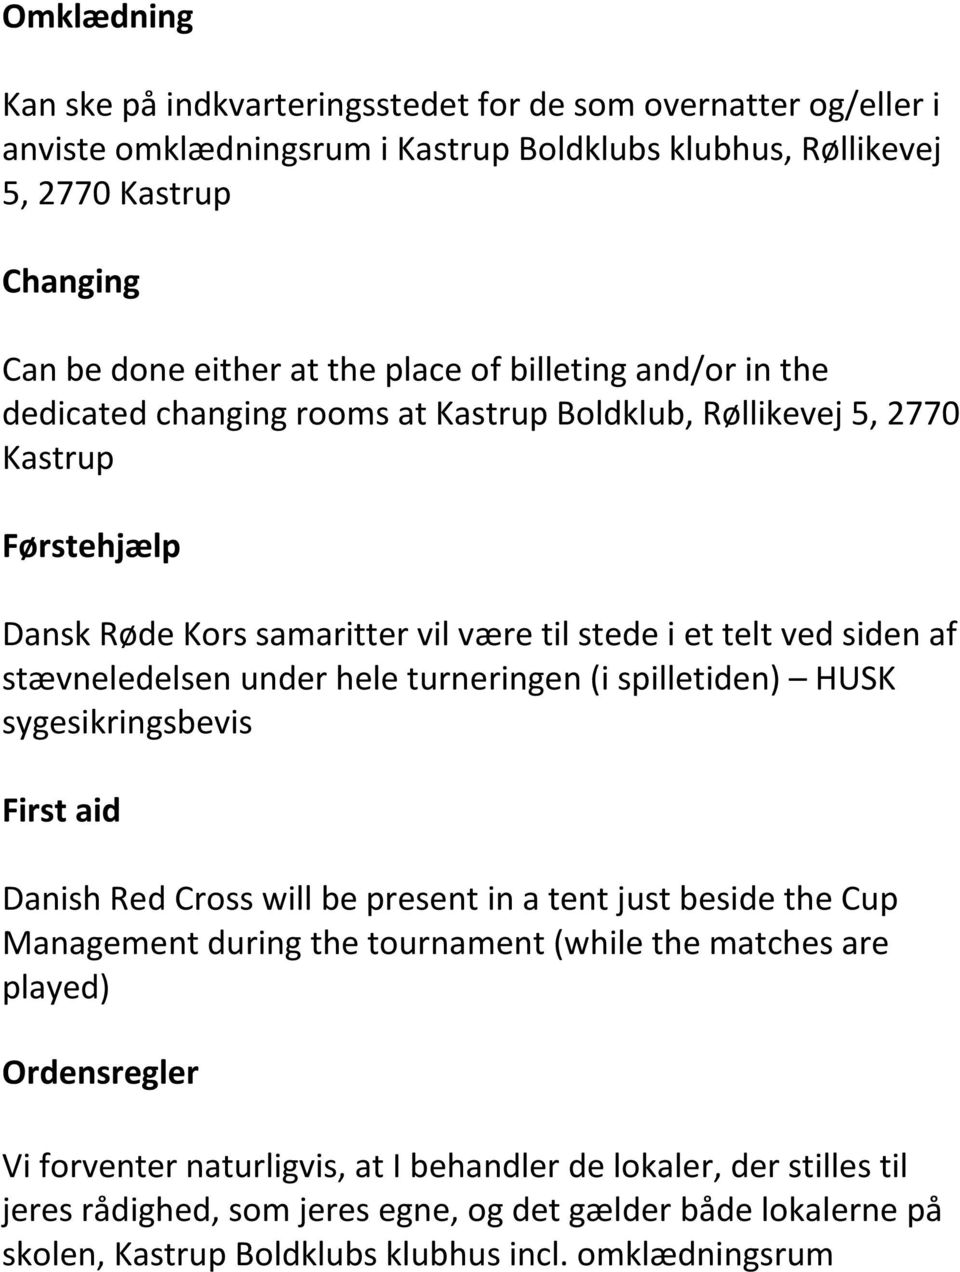 under hele turneringen (i spilletiden) HUSK sygesikringsbevis First aid Danish Red Cross will be present in a tent just beside the Cup Management during the tournament (while the matches are